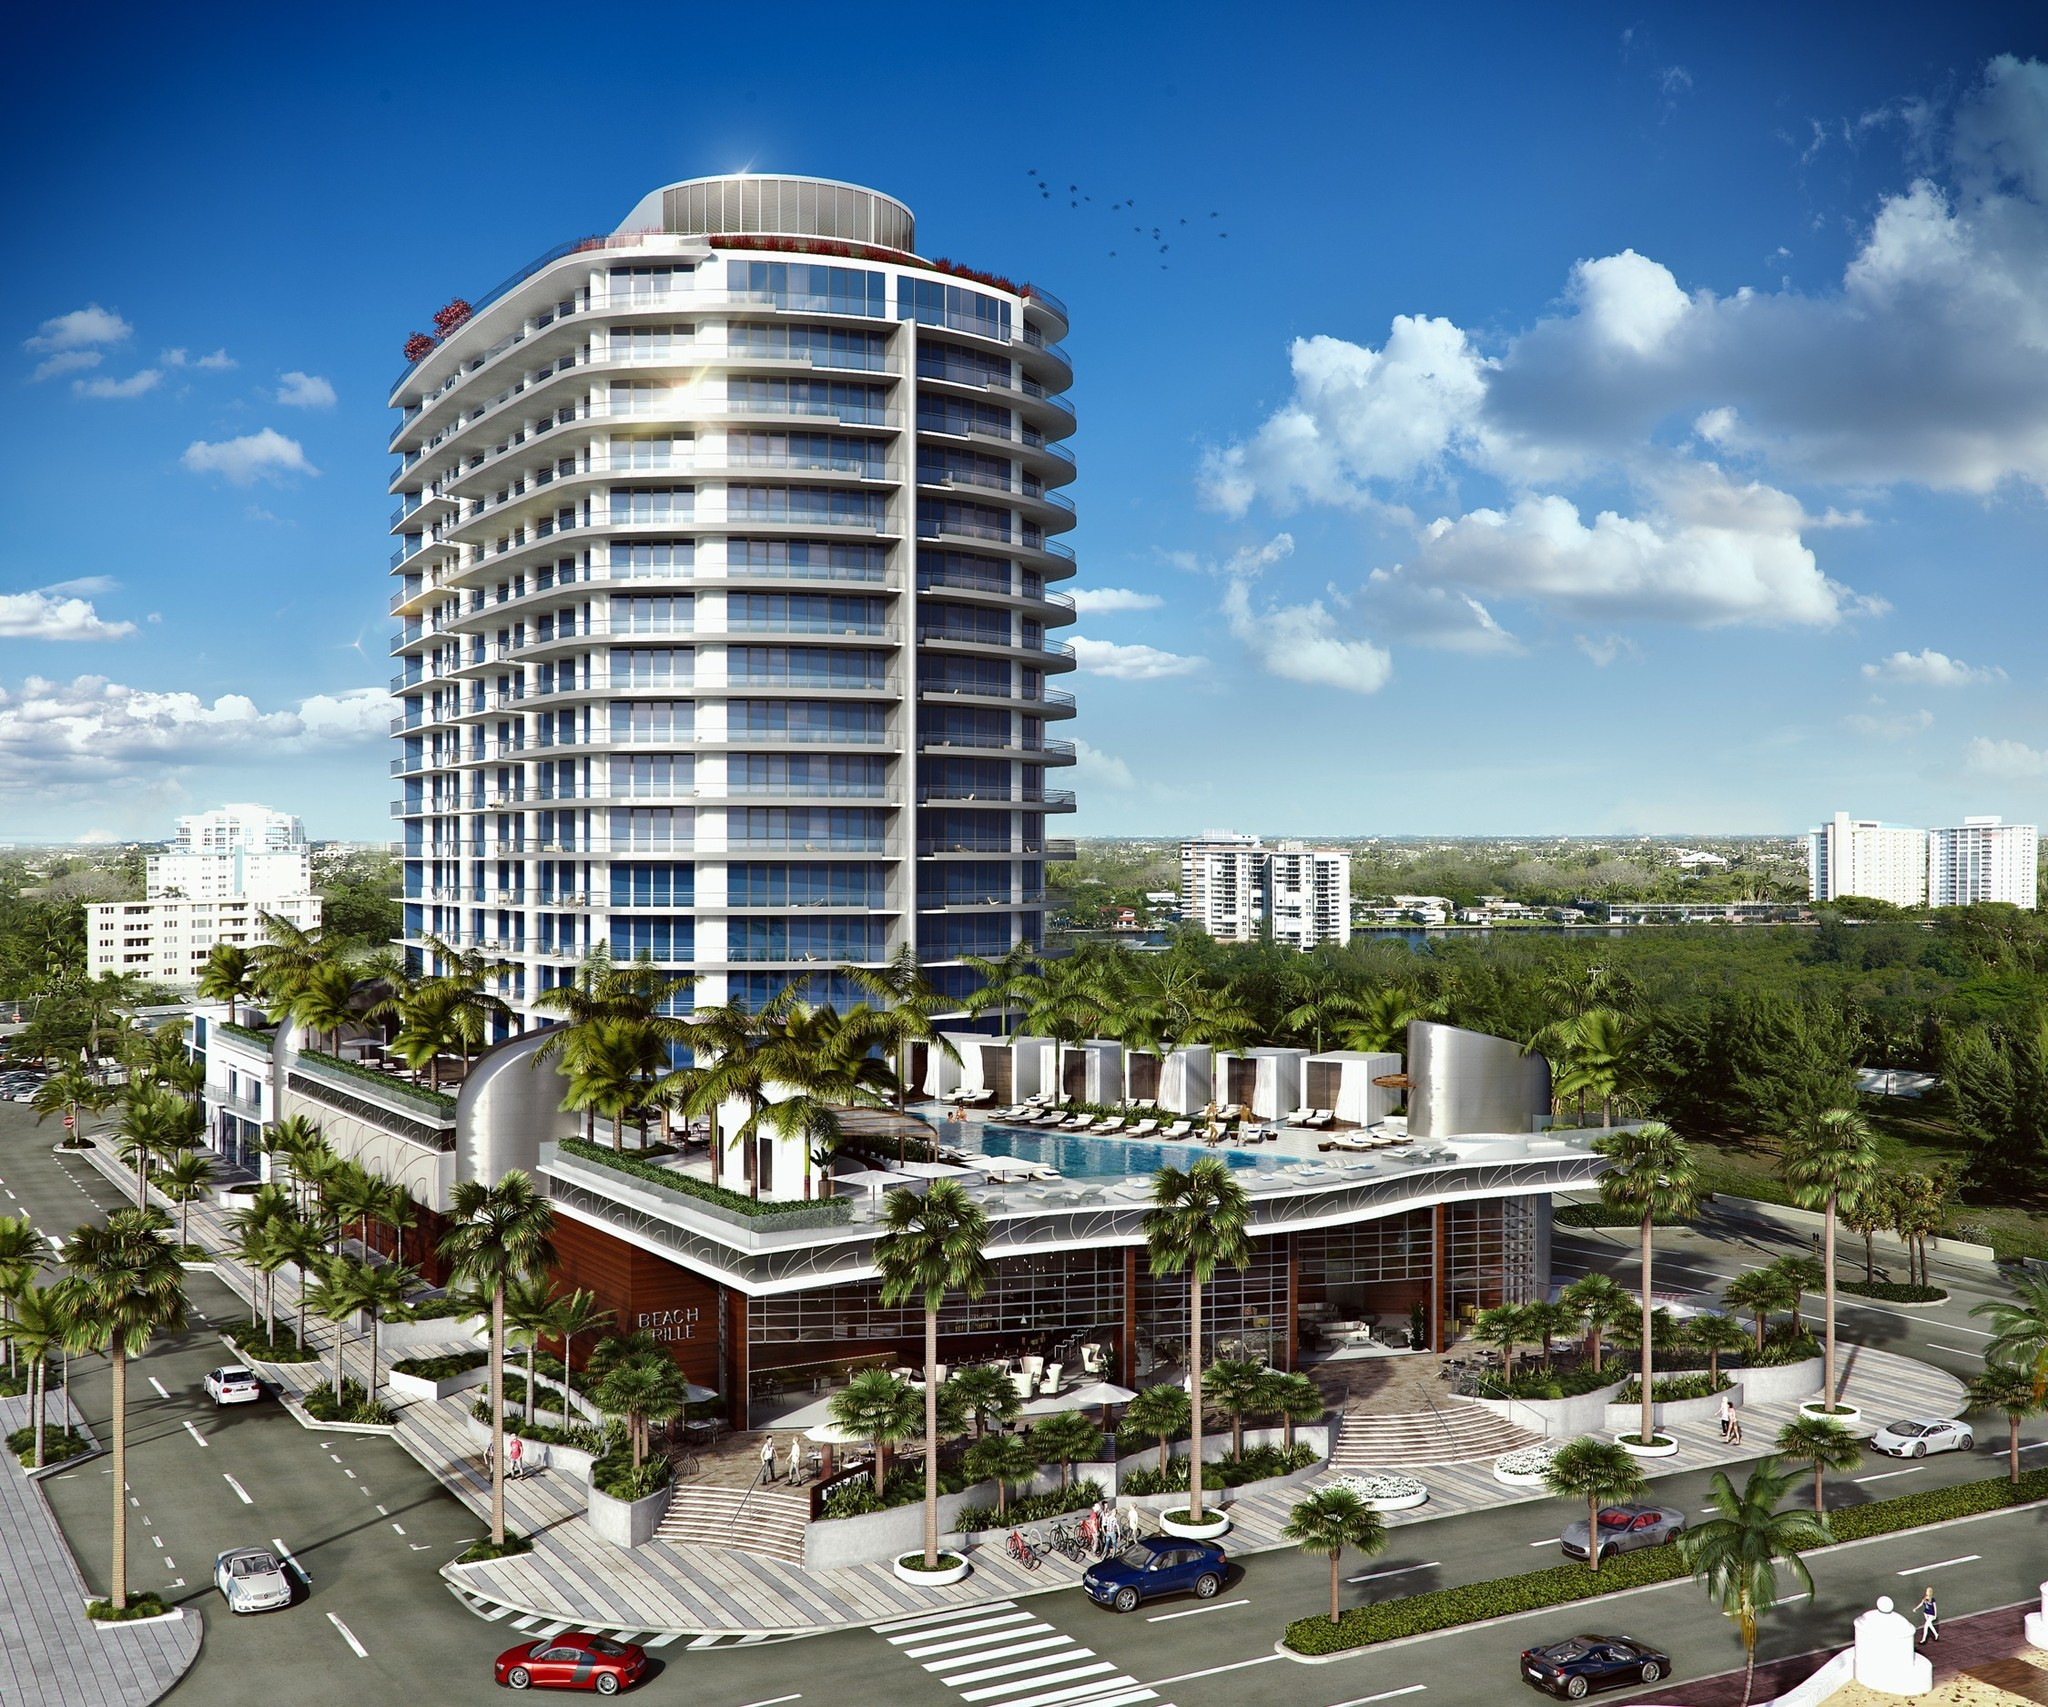 Paramount luxury condo project opening in 2016 - Orlando ...